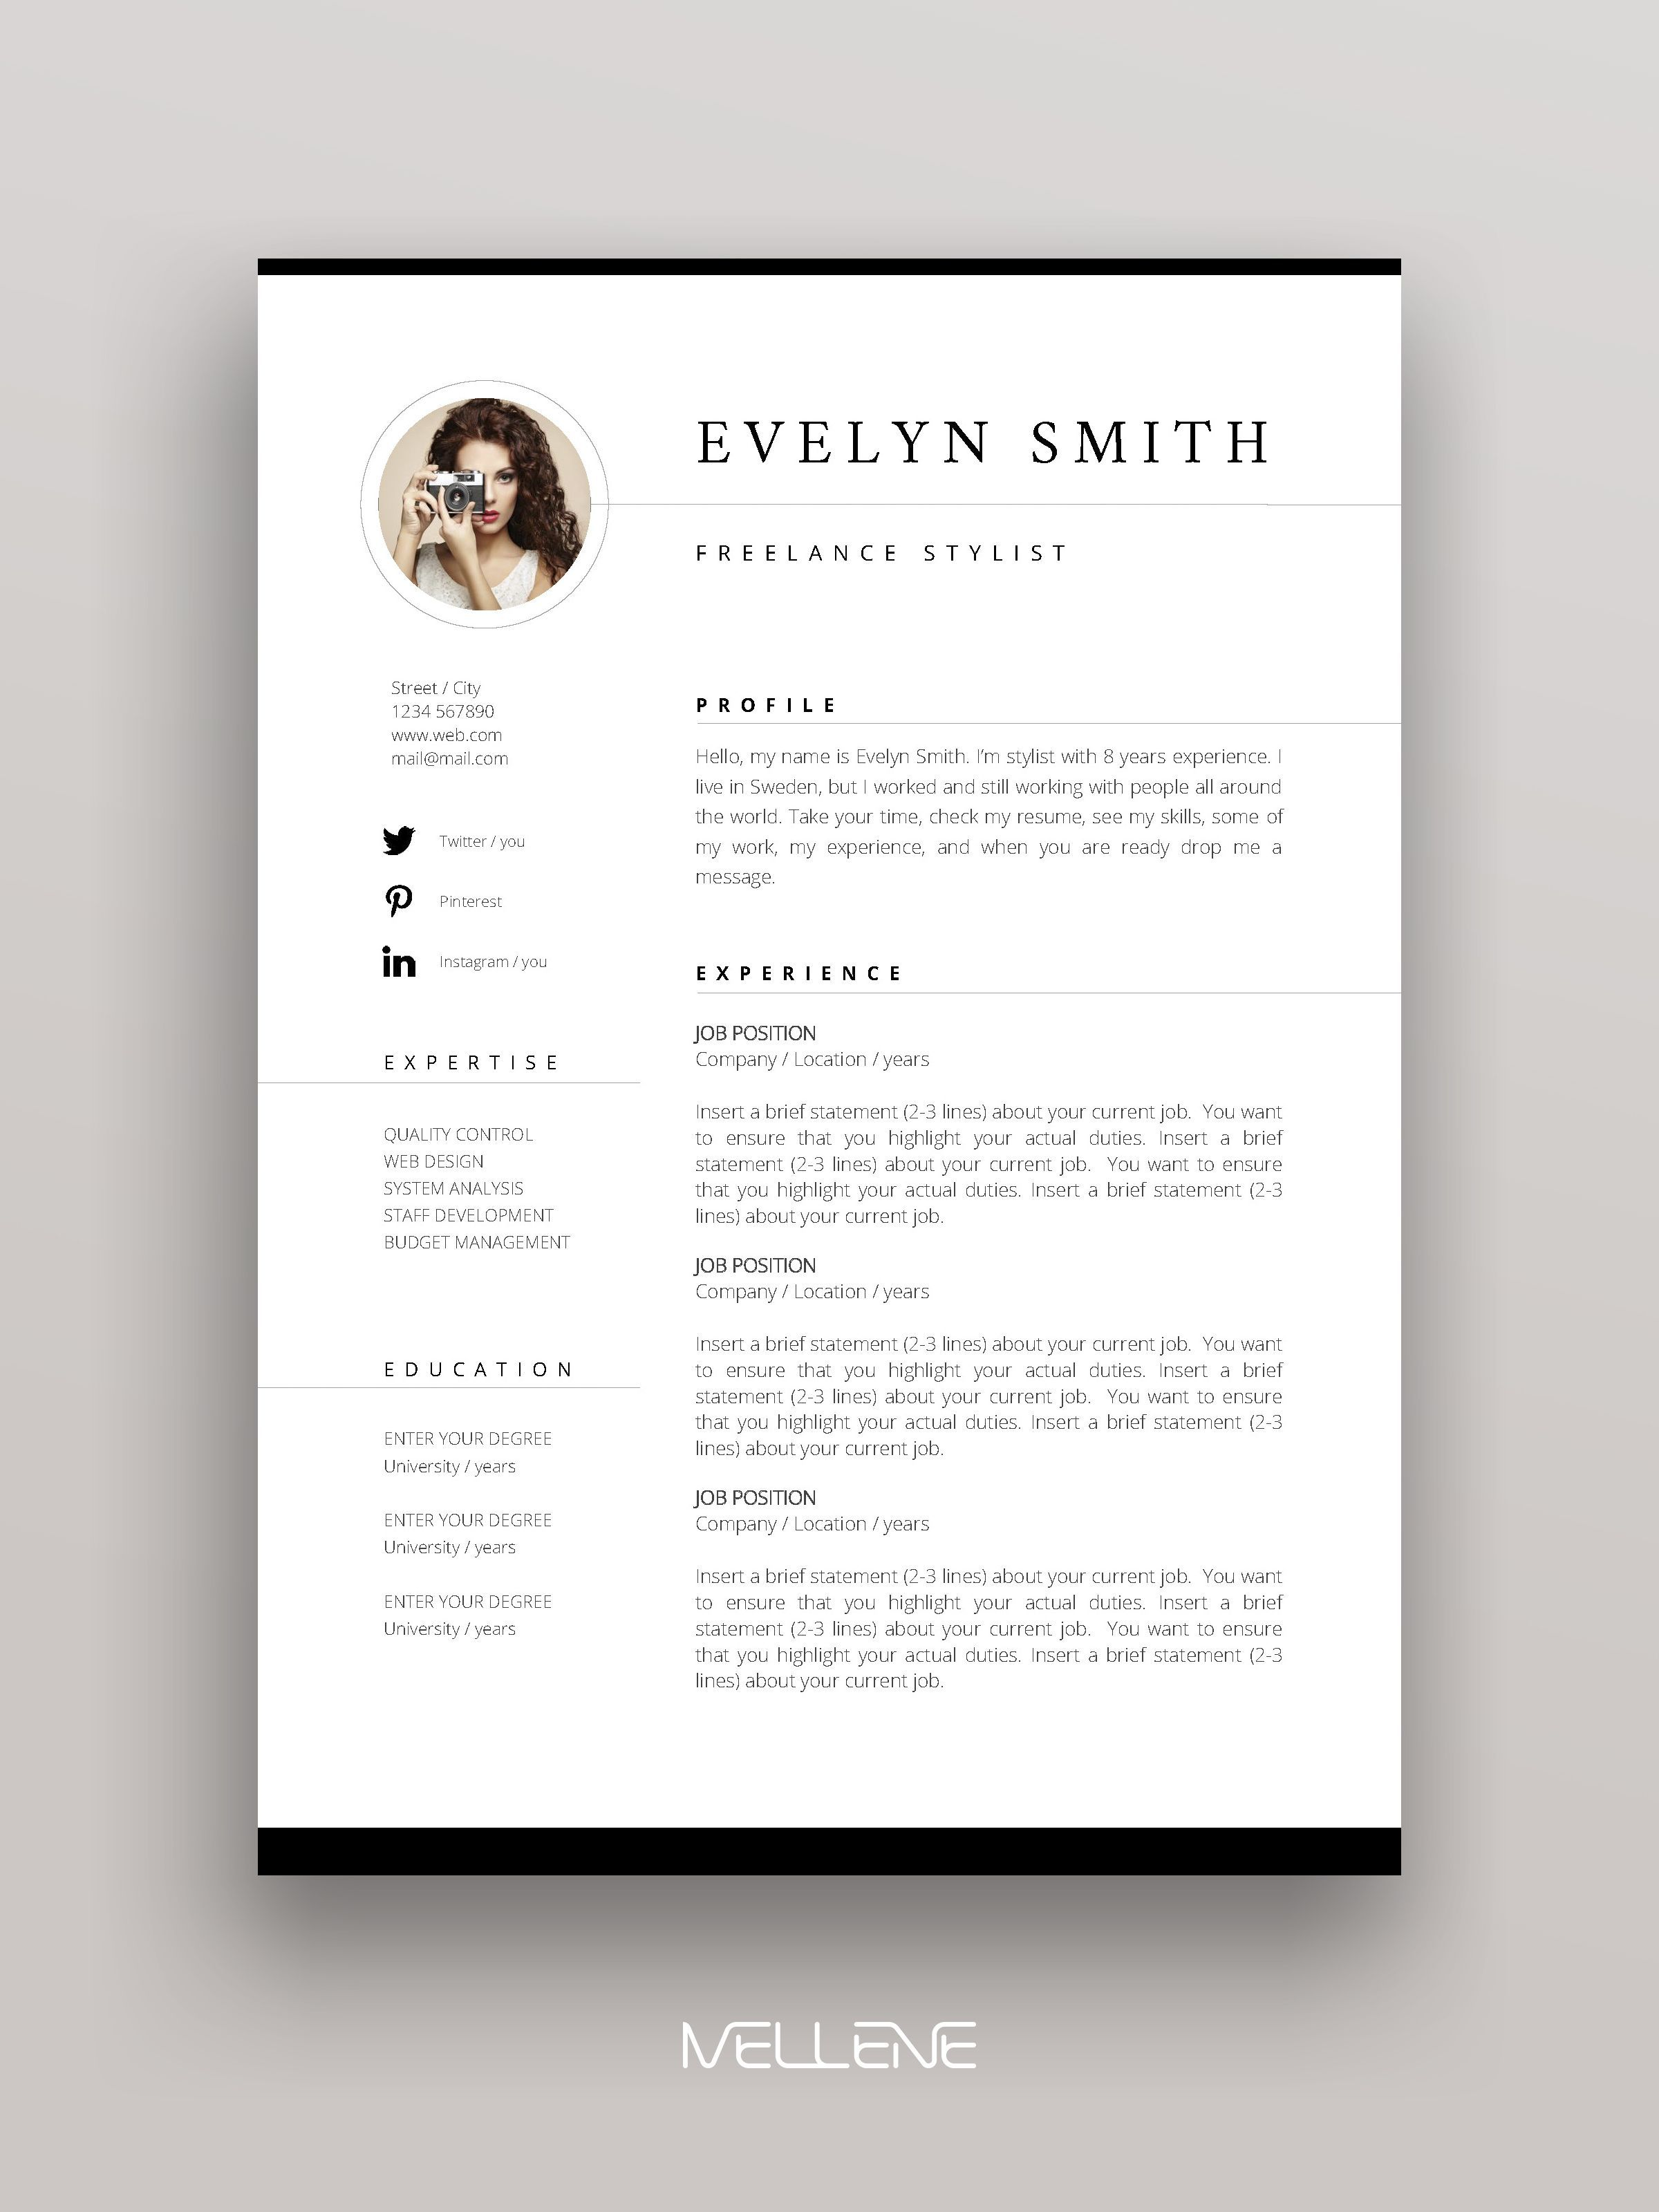 2 Page Resume Cv Design Cover Letter Free Icons And Usage Manual Professional Creative L Resume Template Word Minimal Graphic Design Presentation Layout